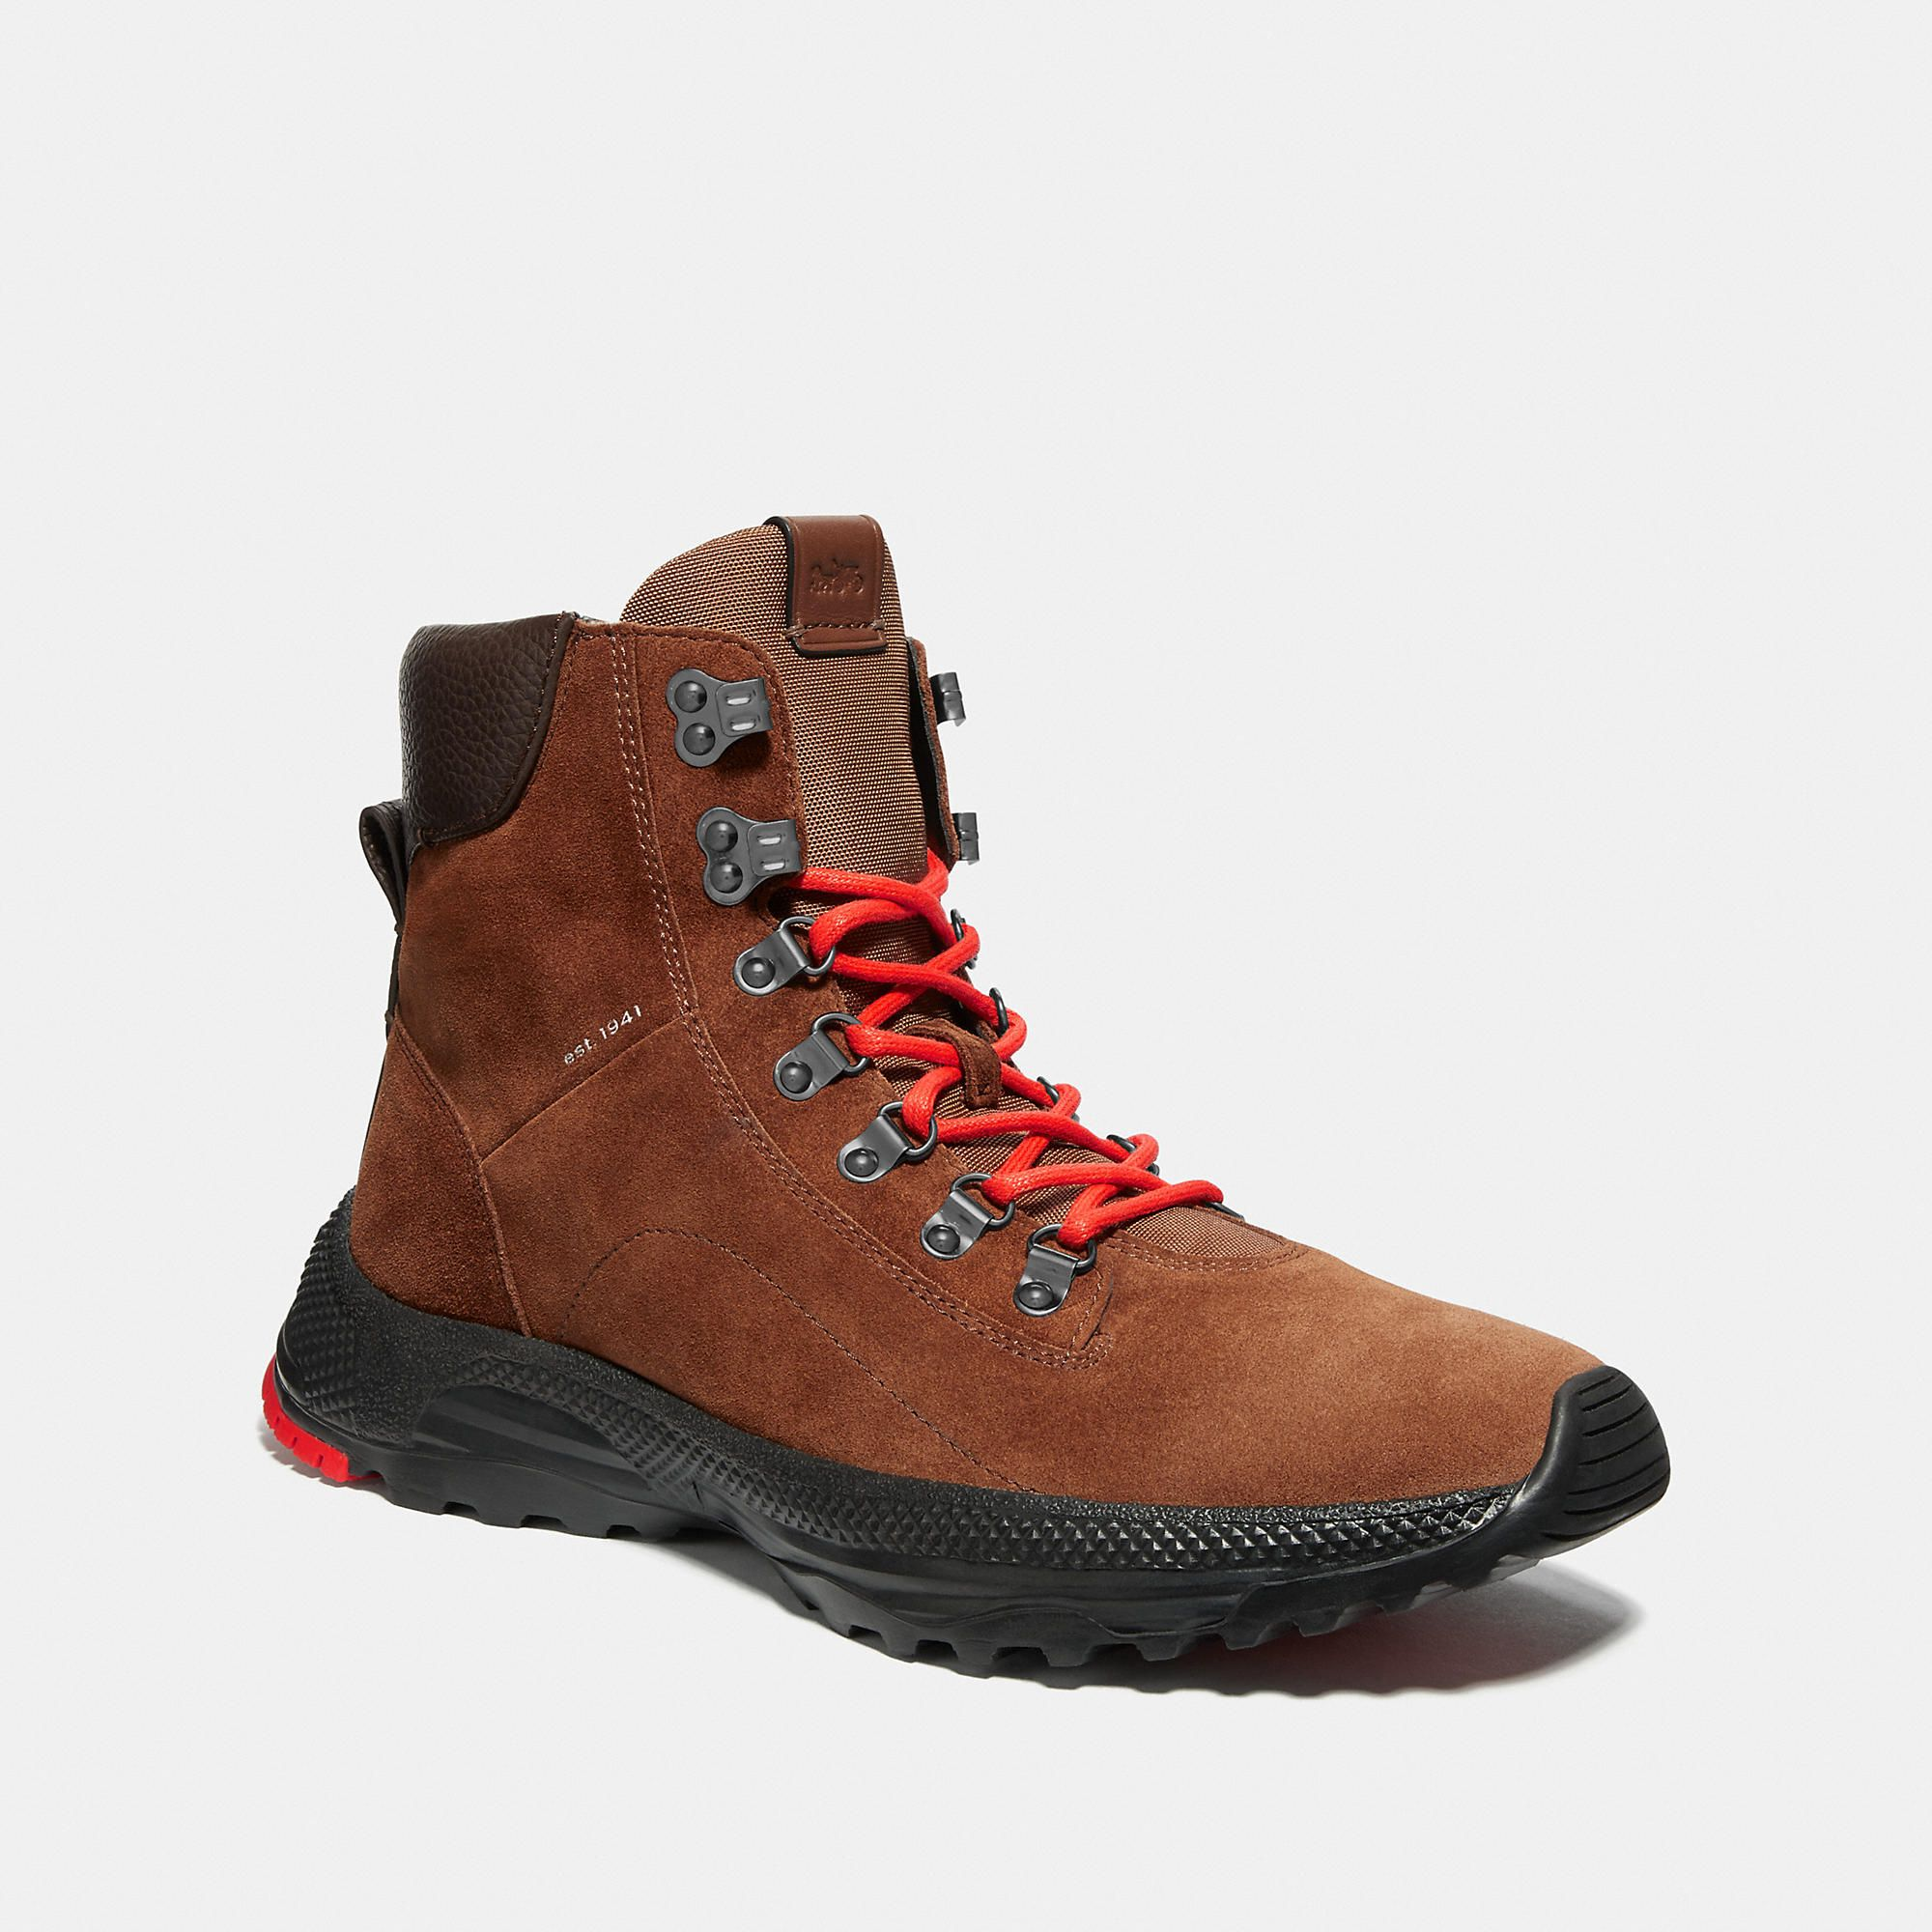 006c48f207d COACH Men's Urban Hiker Boot Size 13 D Tall Boots in 2019 | Products ...